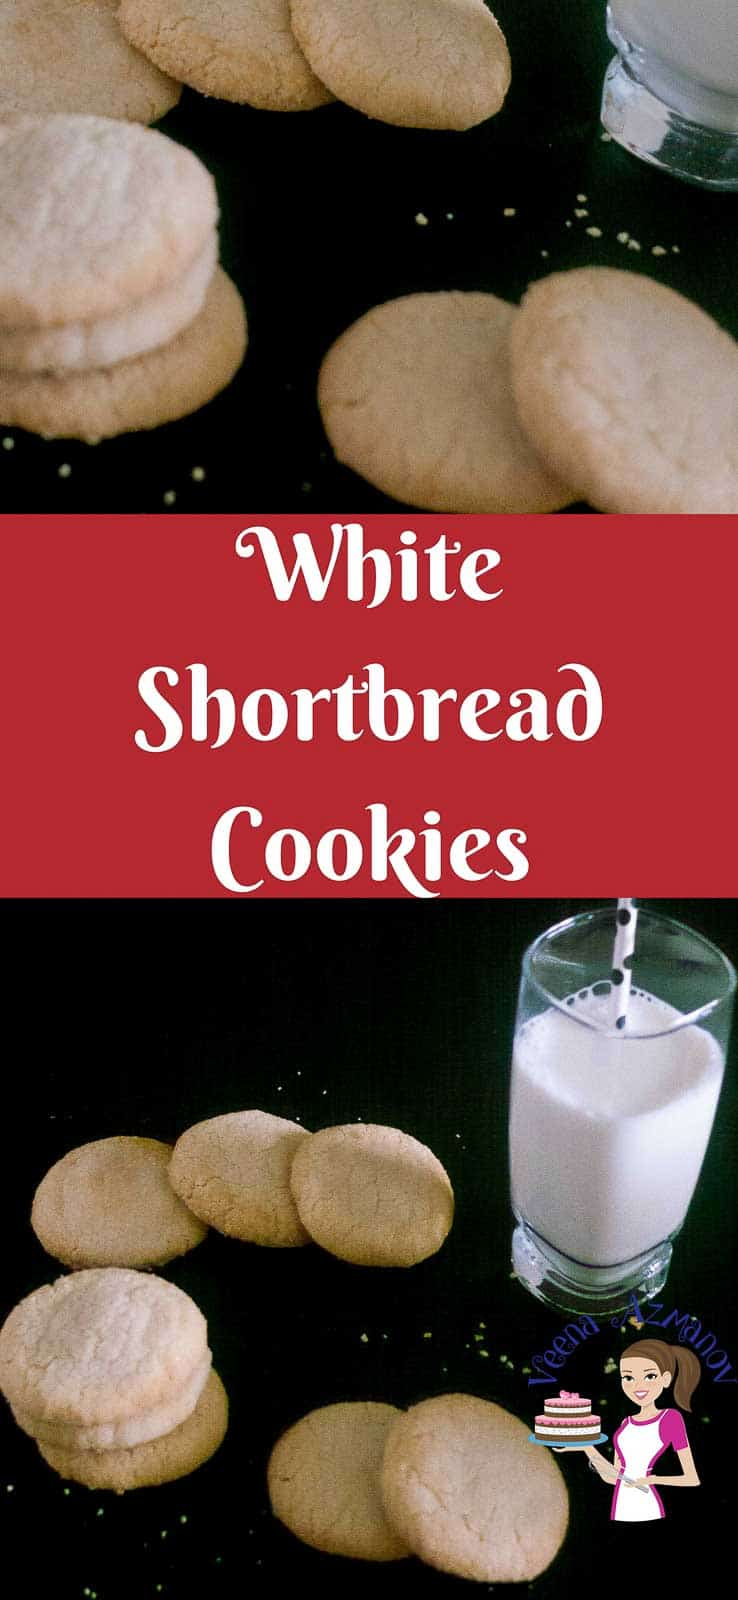 oft, crisp cookies that melt in the mouth is what these white shortbread cookies are all about. So delicious that making extras is highly recommended. They simple easy and effortless to make taking no more than 15 minutes. No need to chill the dough or use any special equipment.